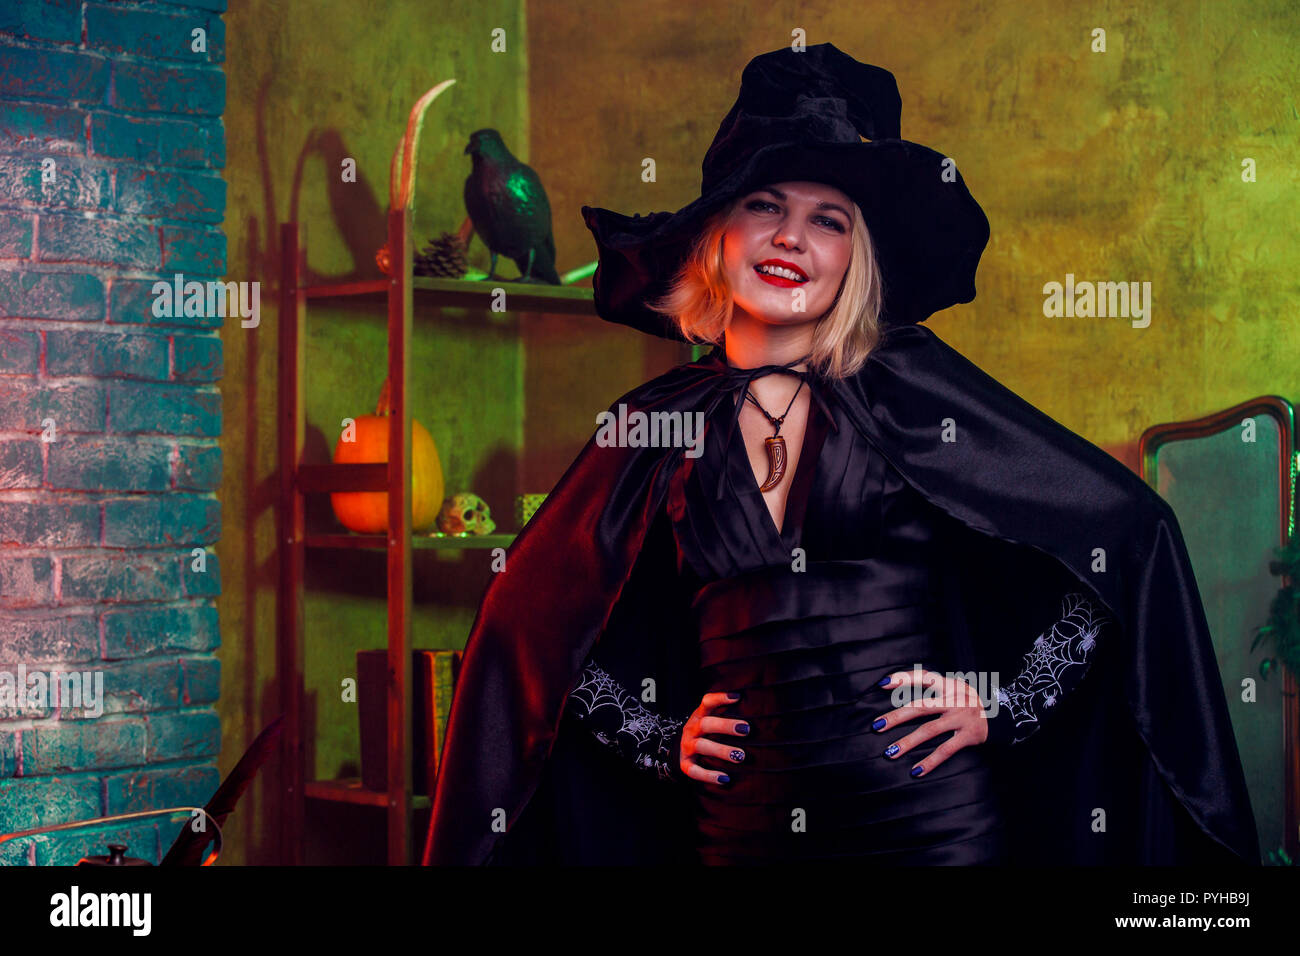 Photo of smiling witch in black hat, dress on background of rack with pumpkin and crow - Stock Image